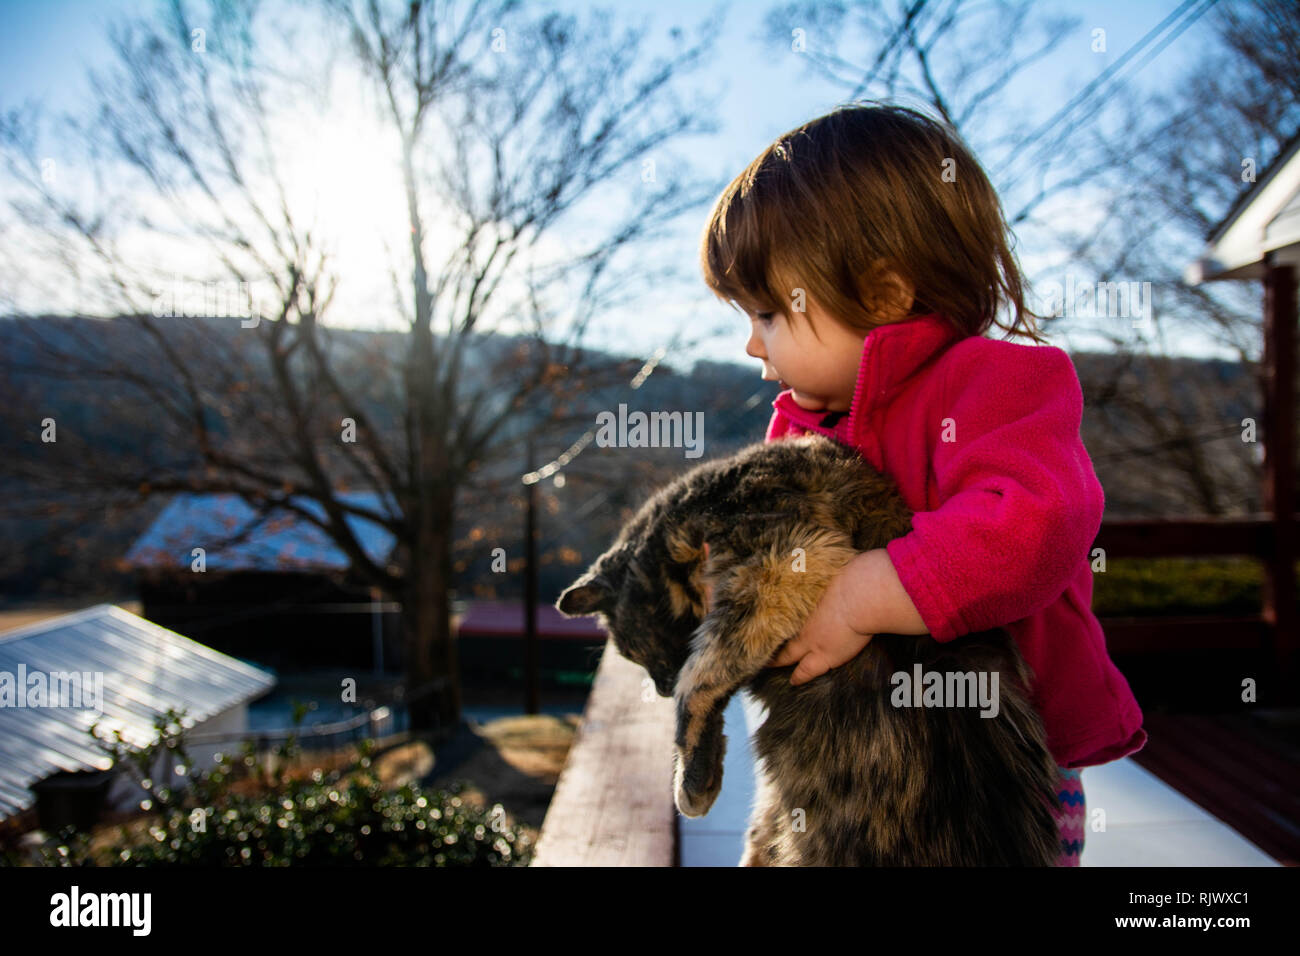 Toddler girl holds a cat on a sunny day in Pennsylvania, USA - Stock Image